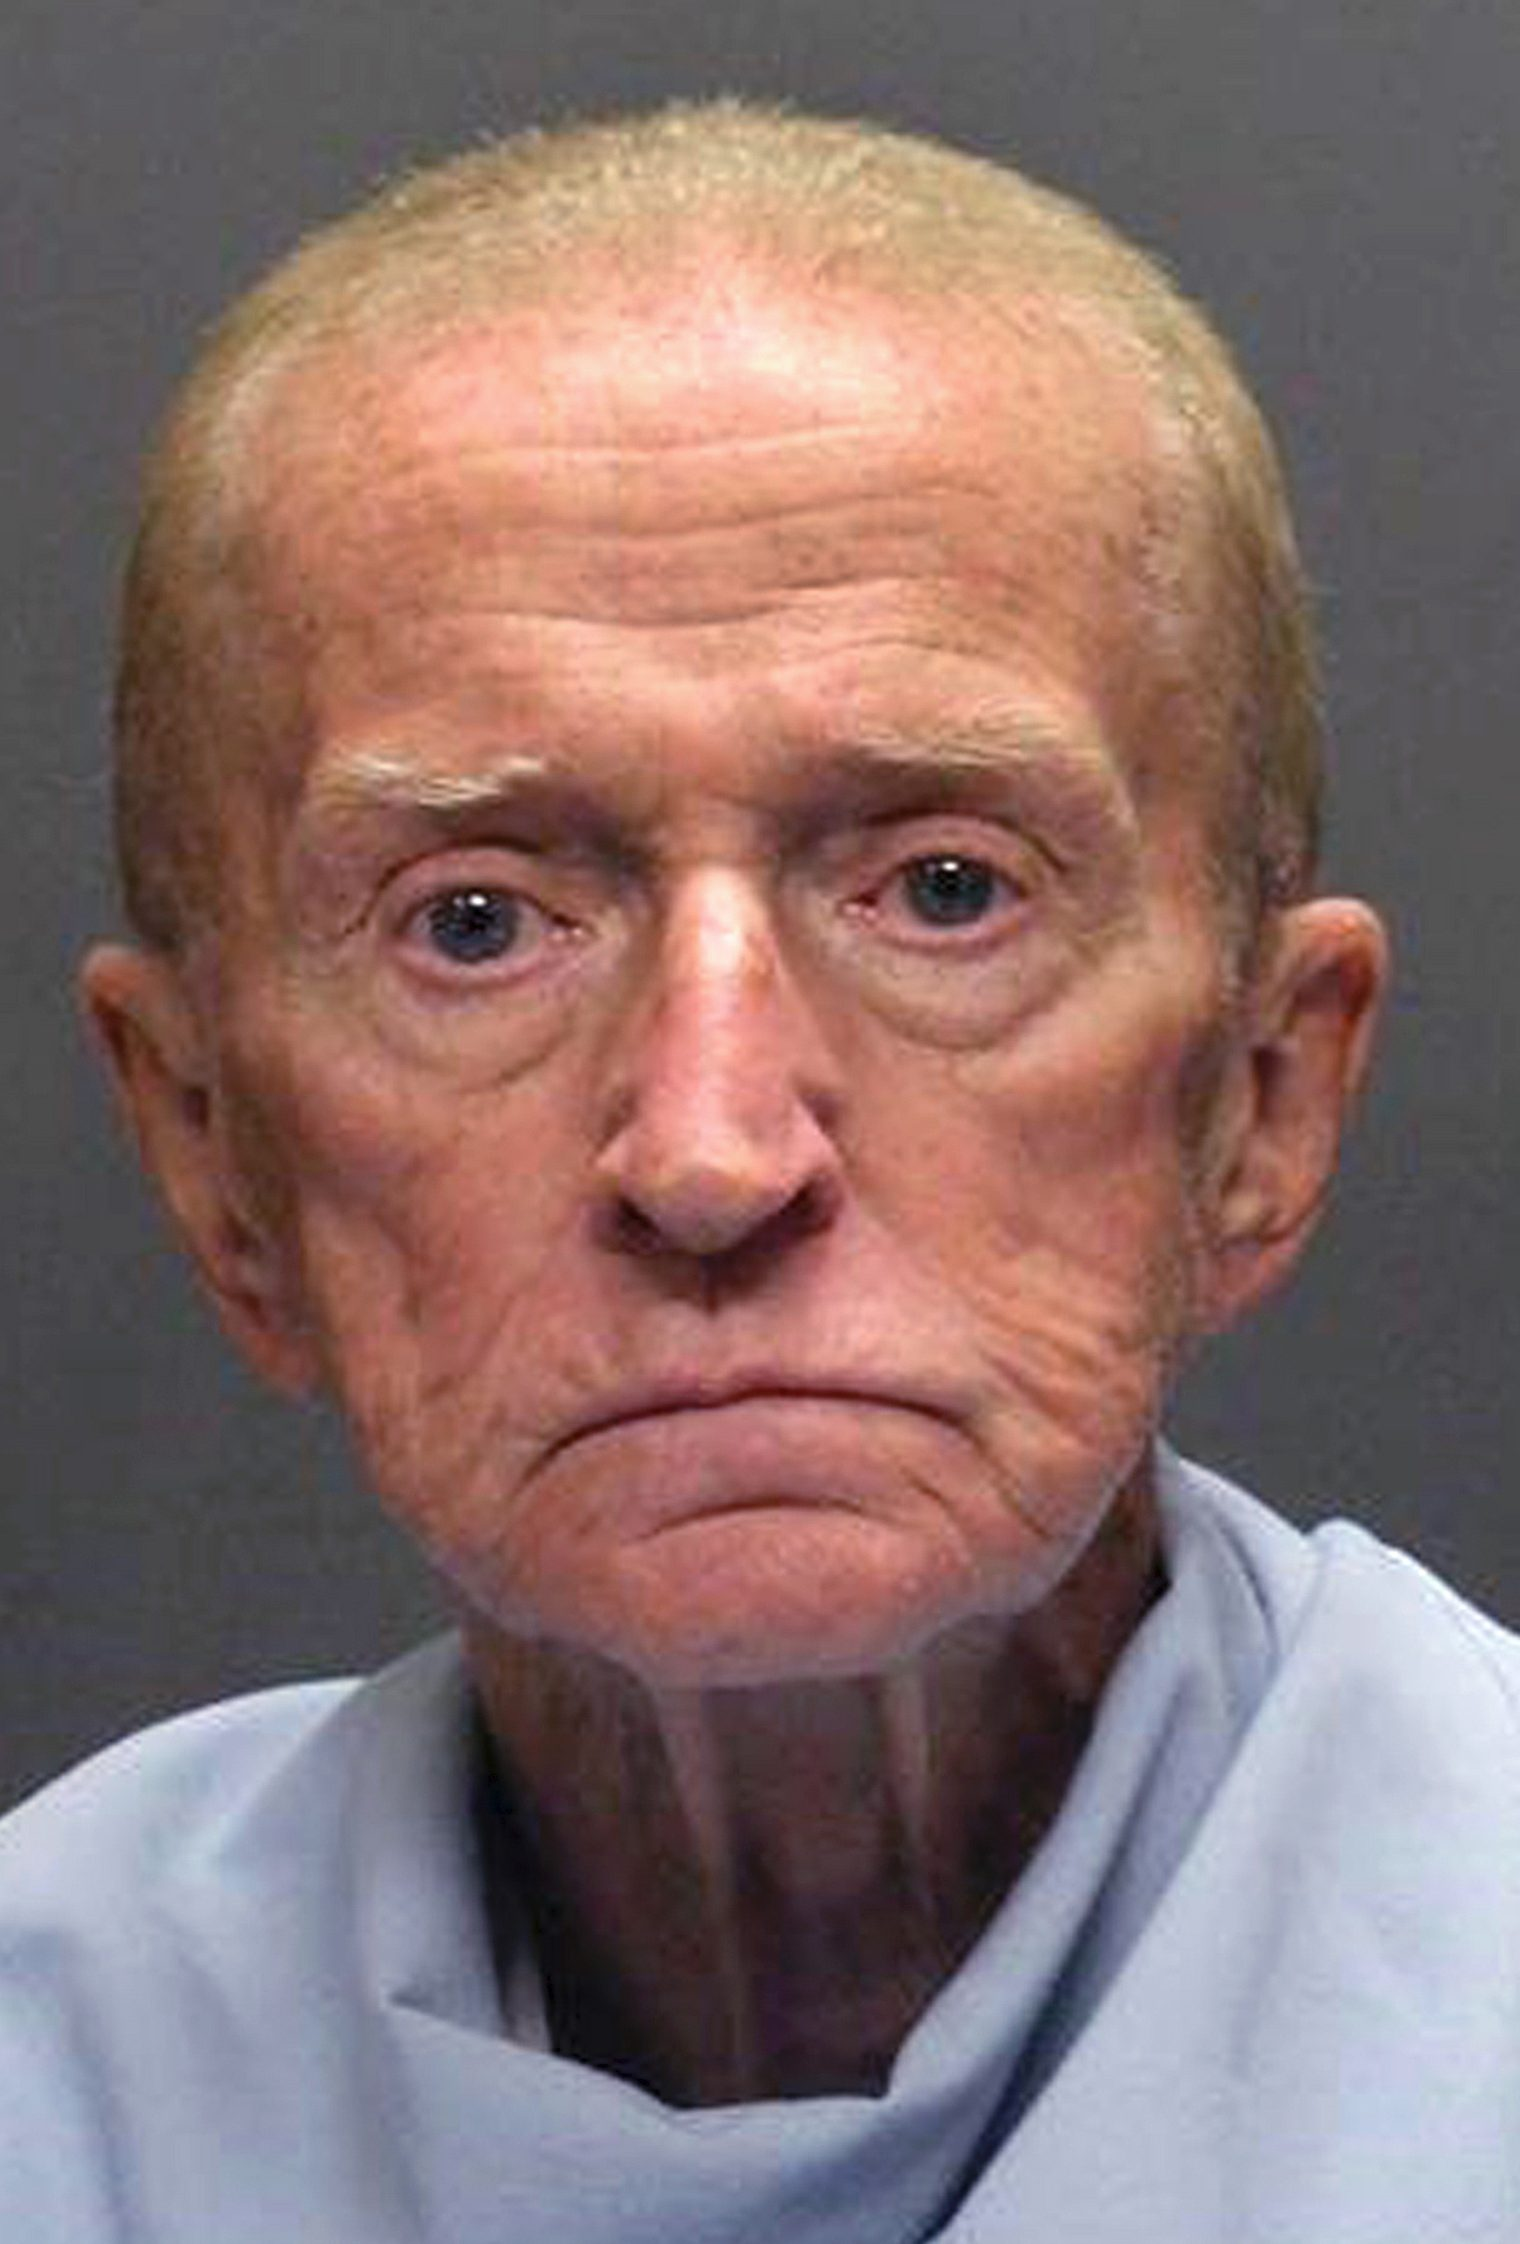 This photo released on Jan. 14, 2018, by the Tucson Police Department shows Robert Krebs, who has a decades-long criminal record for stealing from banks.